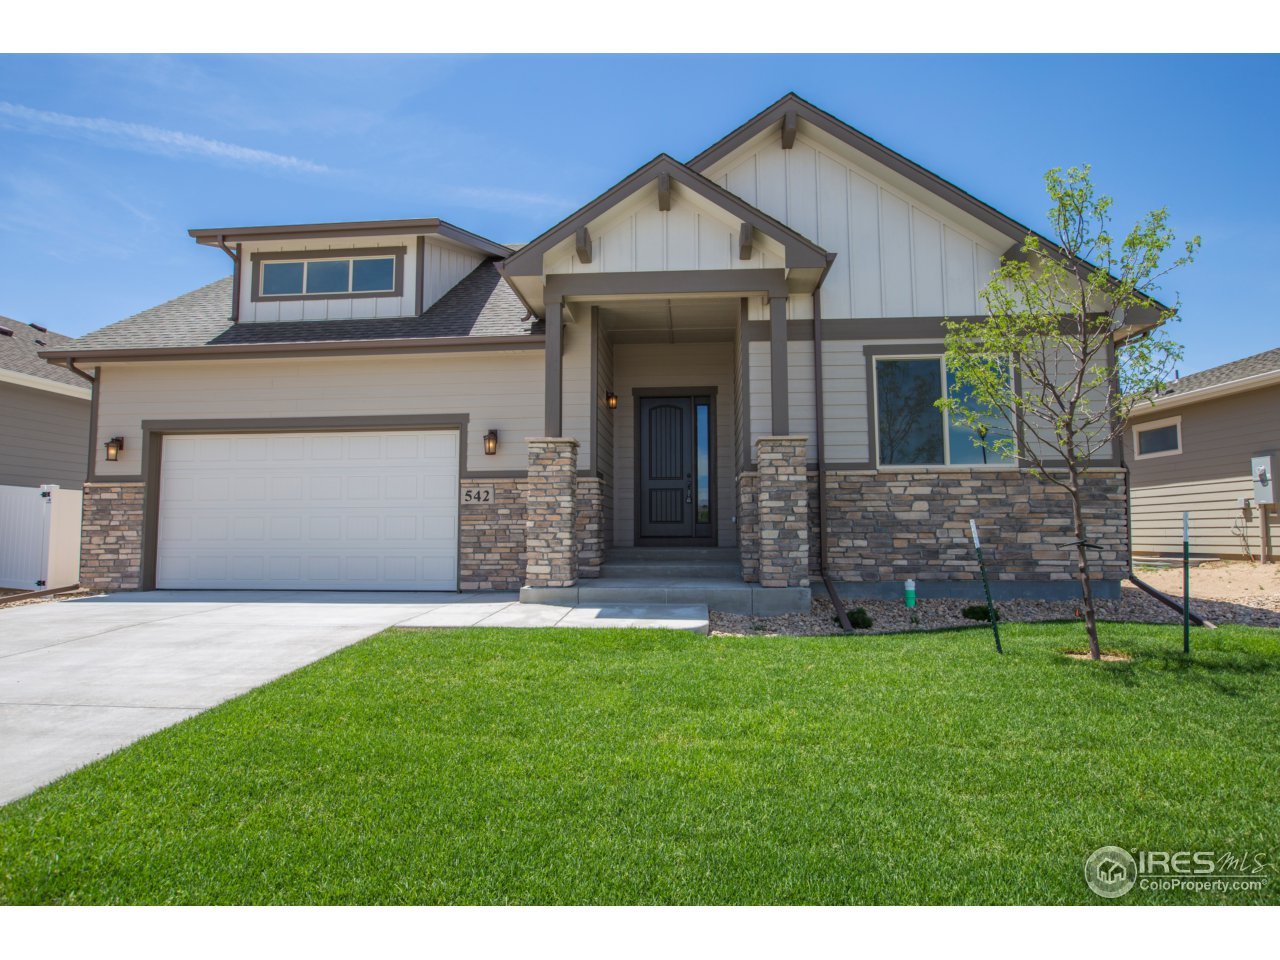 542 Vermilion Peak Dr, Windsor, CO 80550